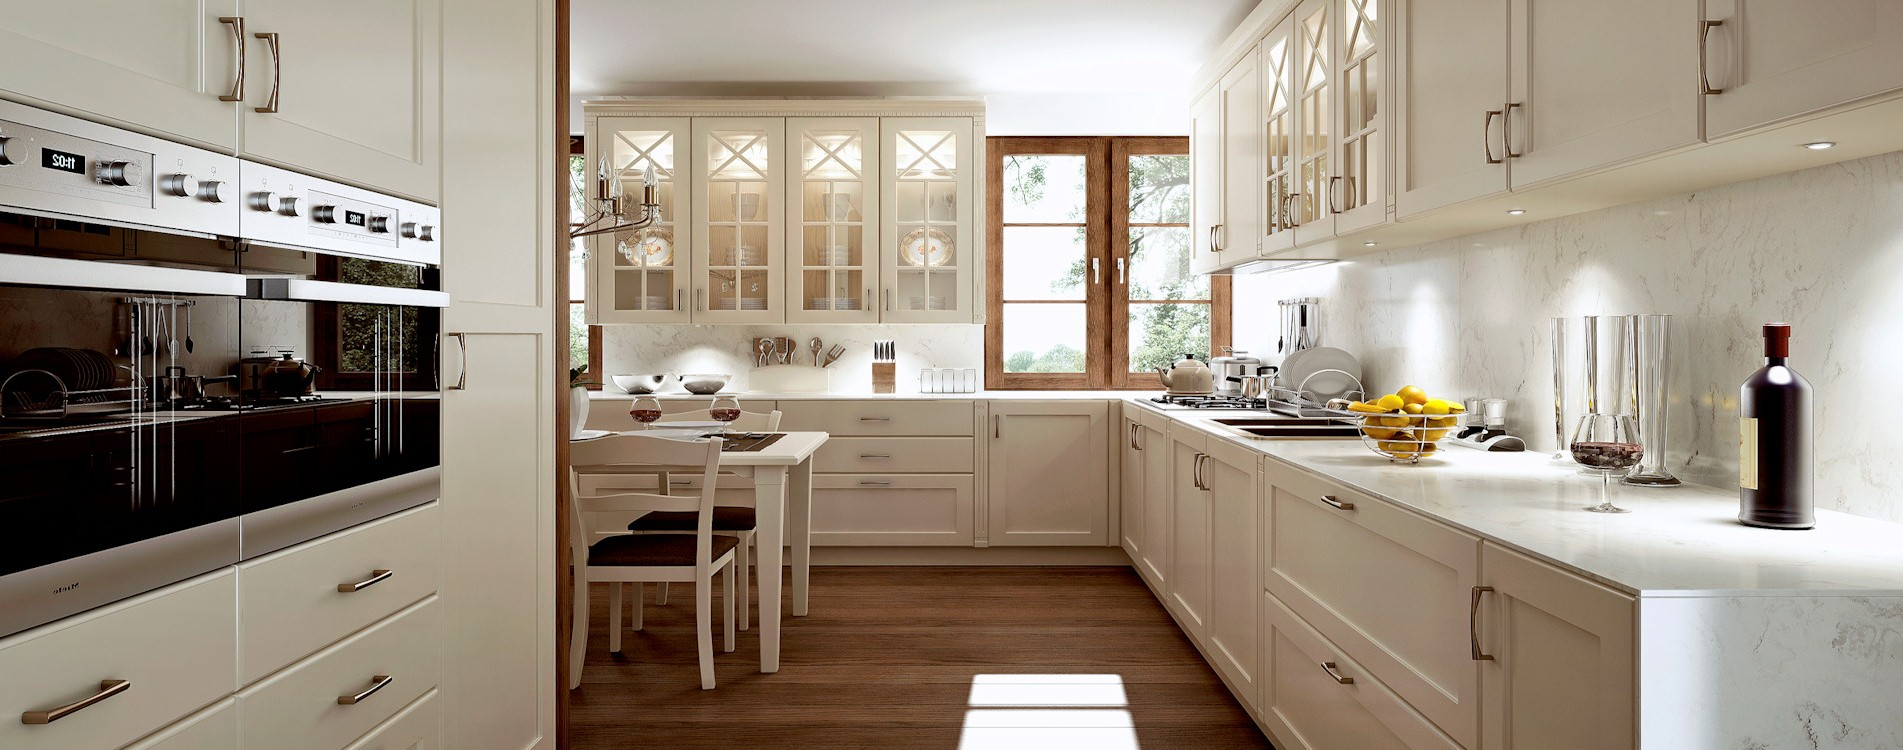 attractive kitchen bench lighting led traditional kitchen lighting 22 awesome traditional kitchen lighting ideas